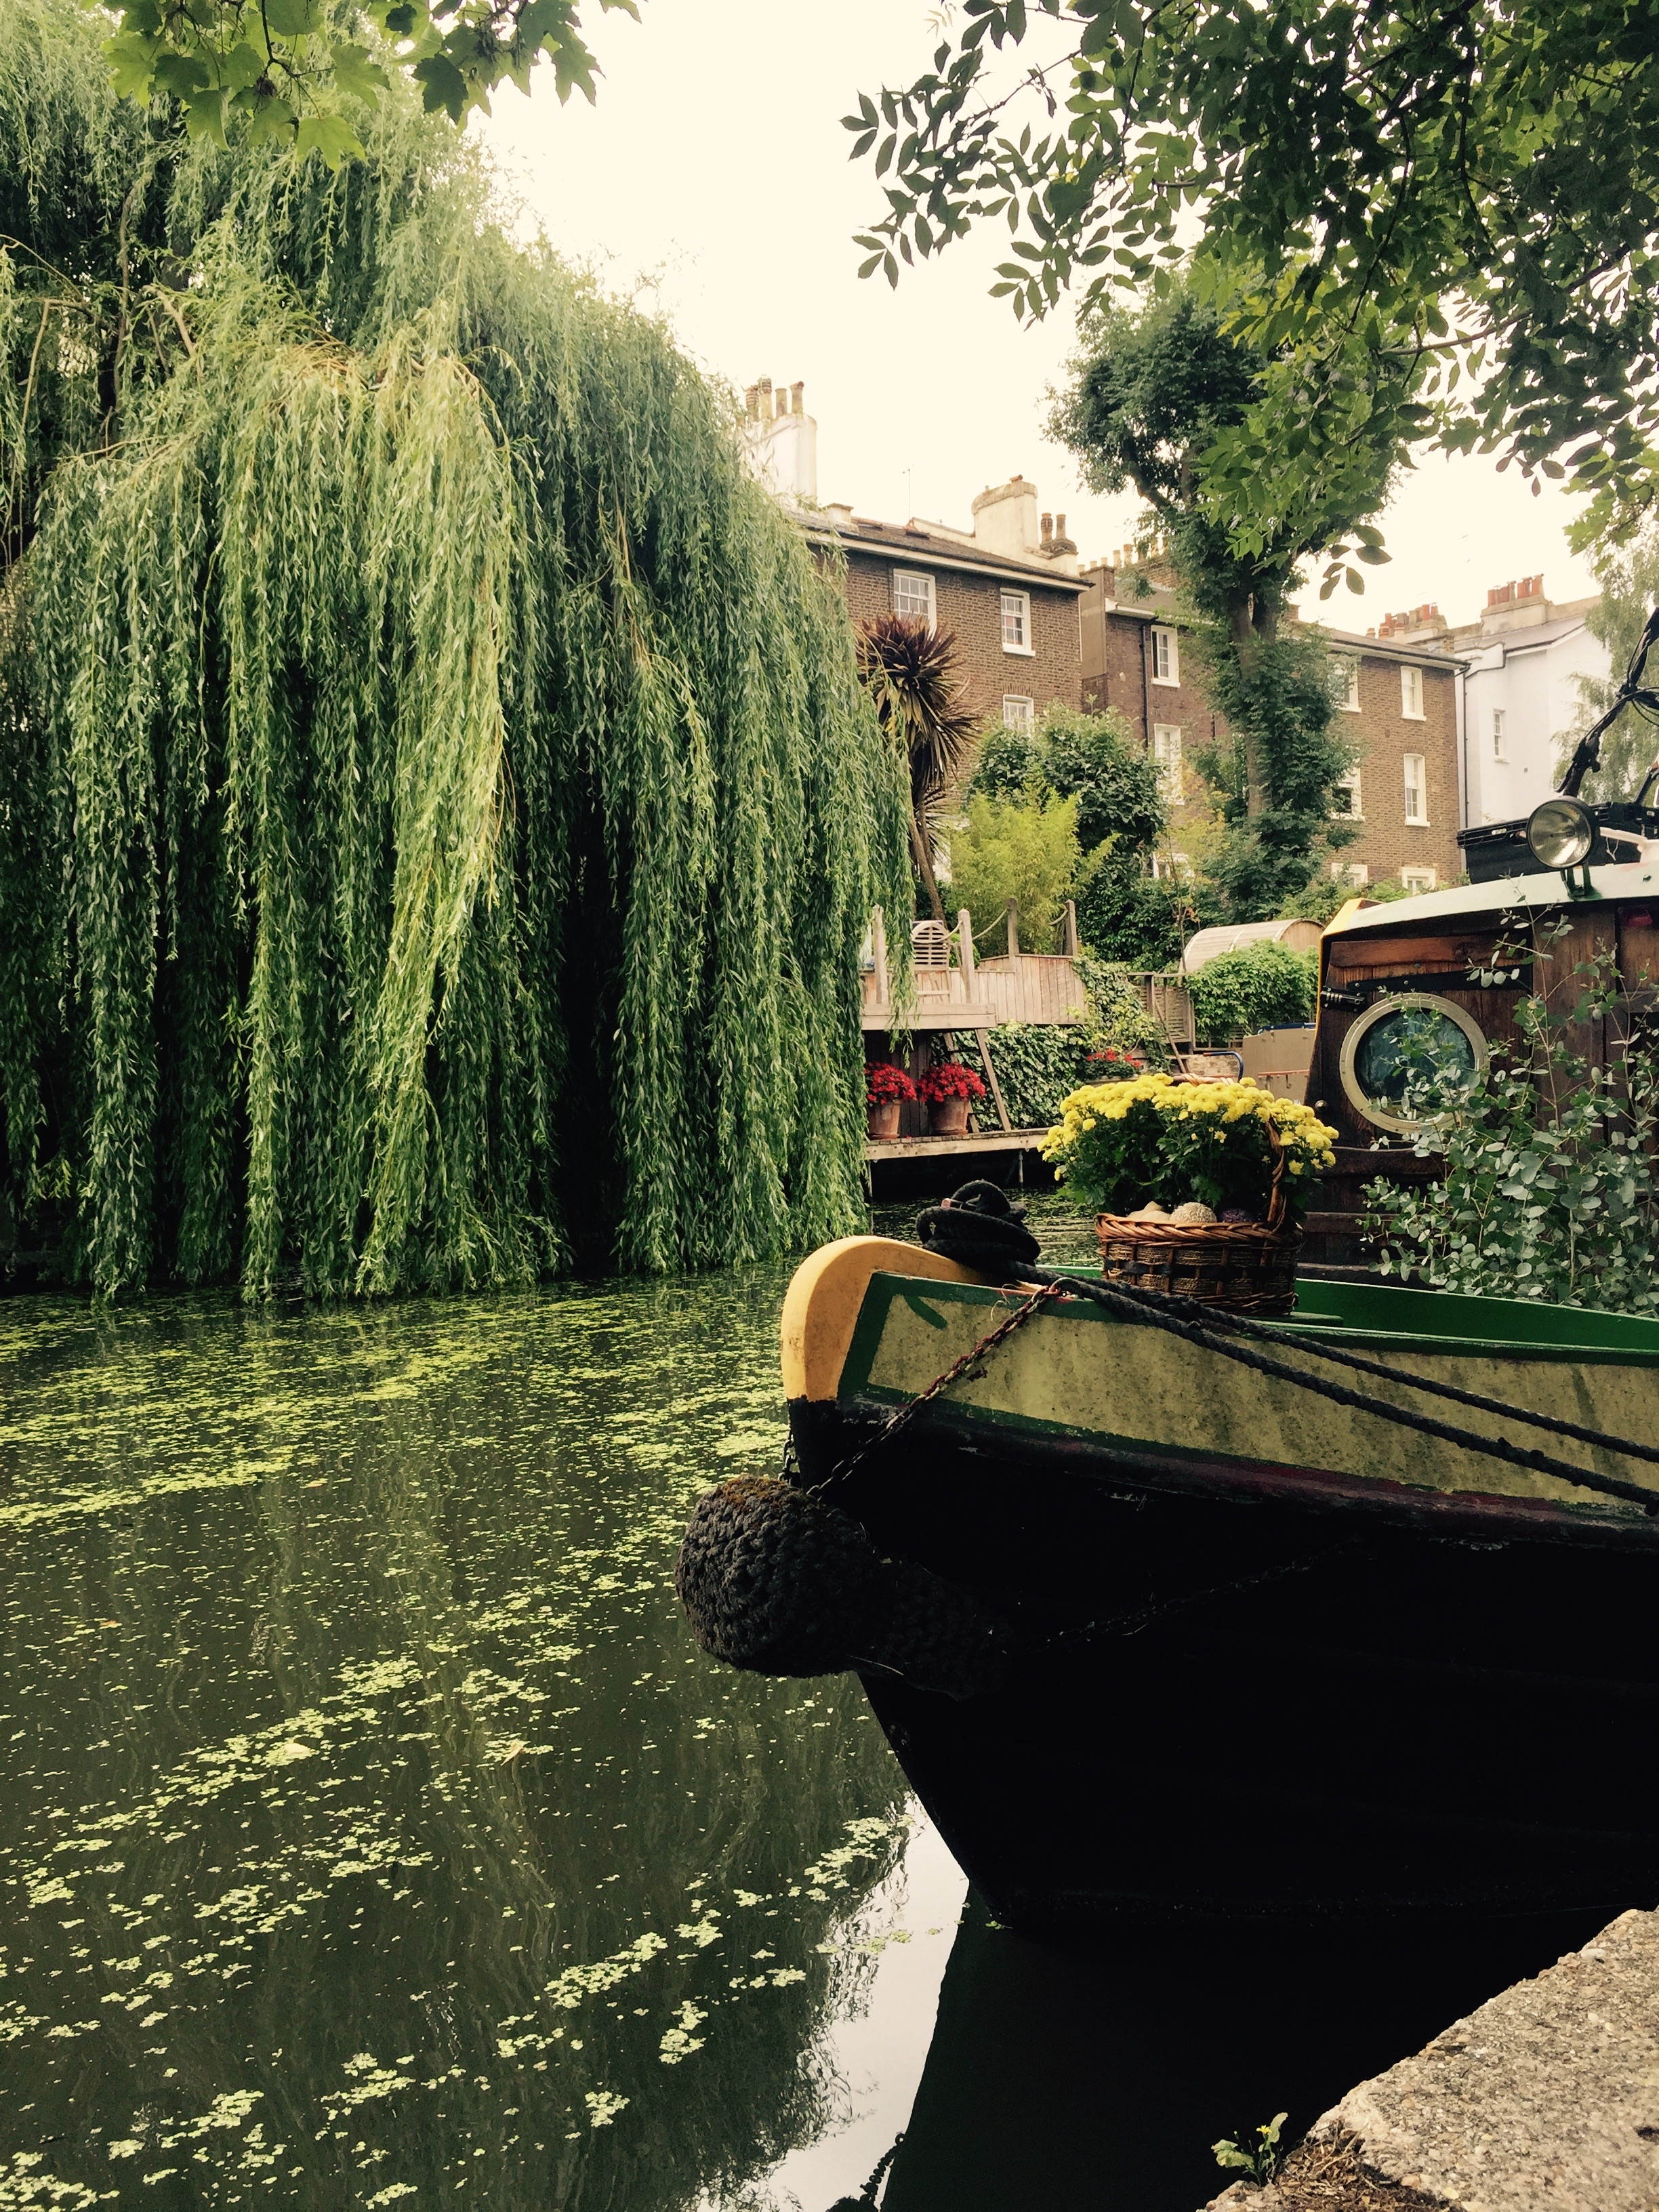 iPhone photography | regents canal | photographer